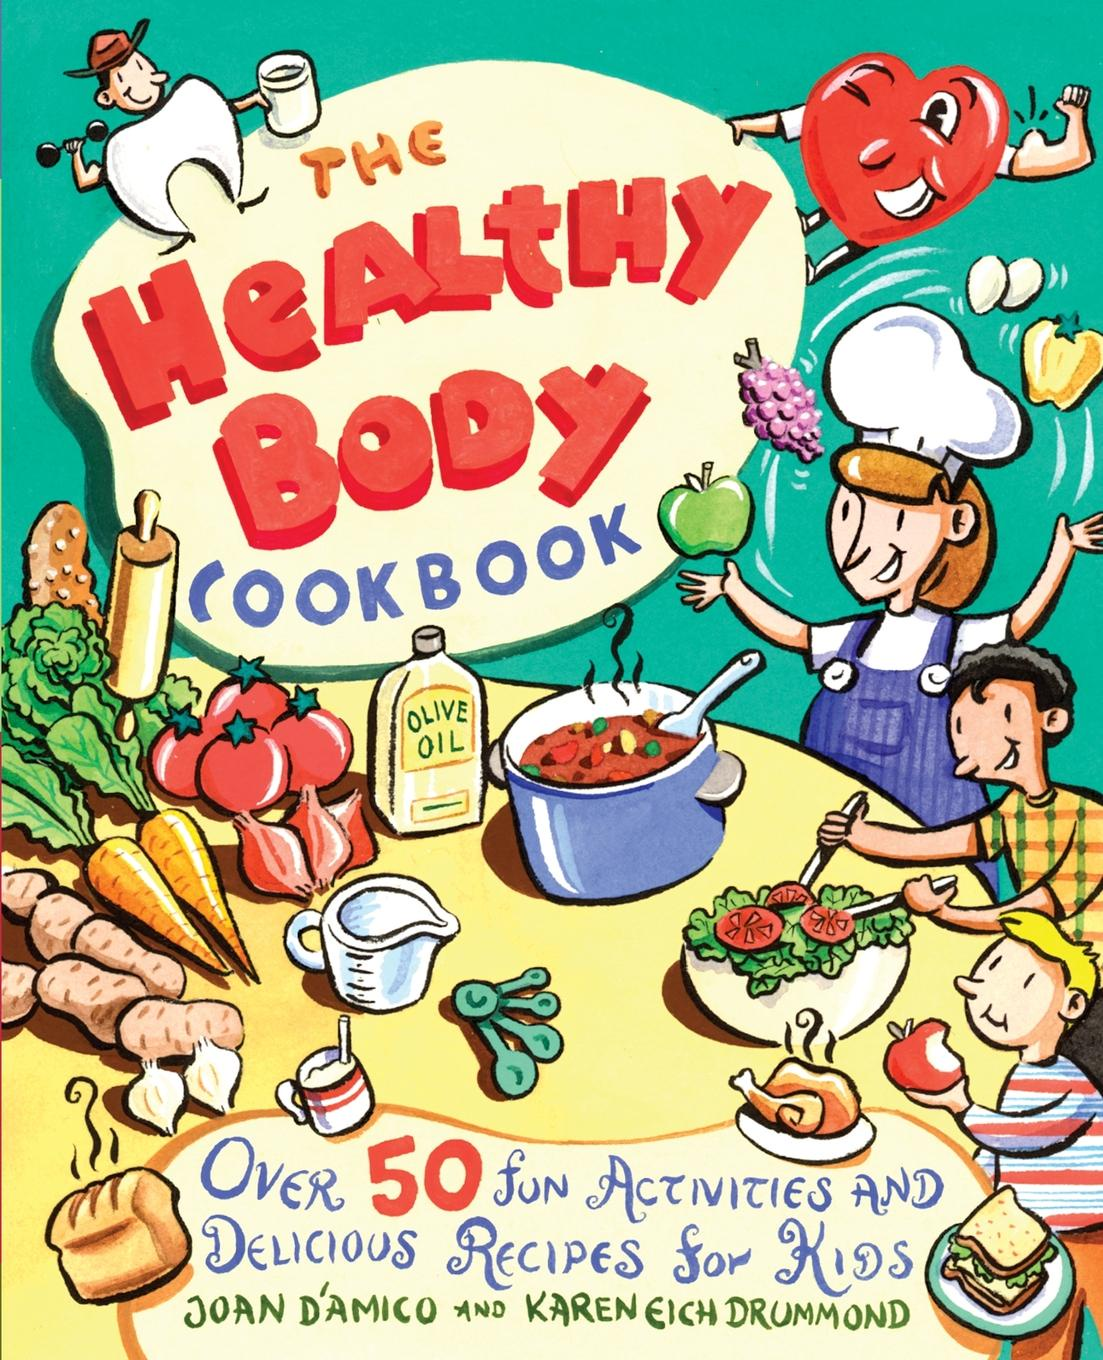 Joan D'Amico, John D'Amico, Karen Eich Drummond The Healthy Body Cookbook. Over 50 Fun Activities and Delicious Recipes for Kids cocktails fancy and delicious recipes for all tastes